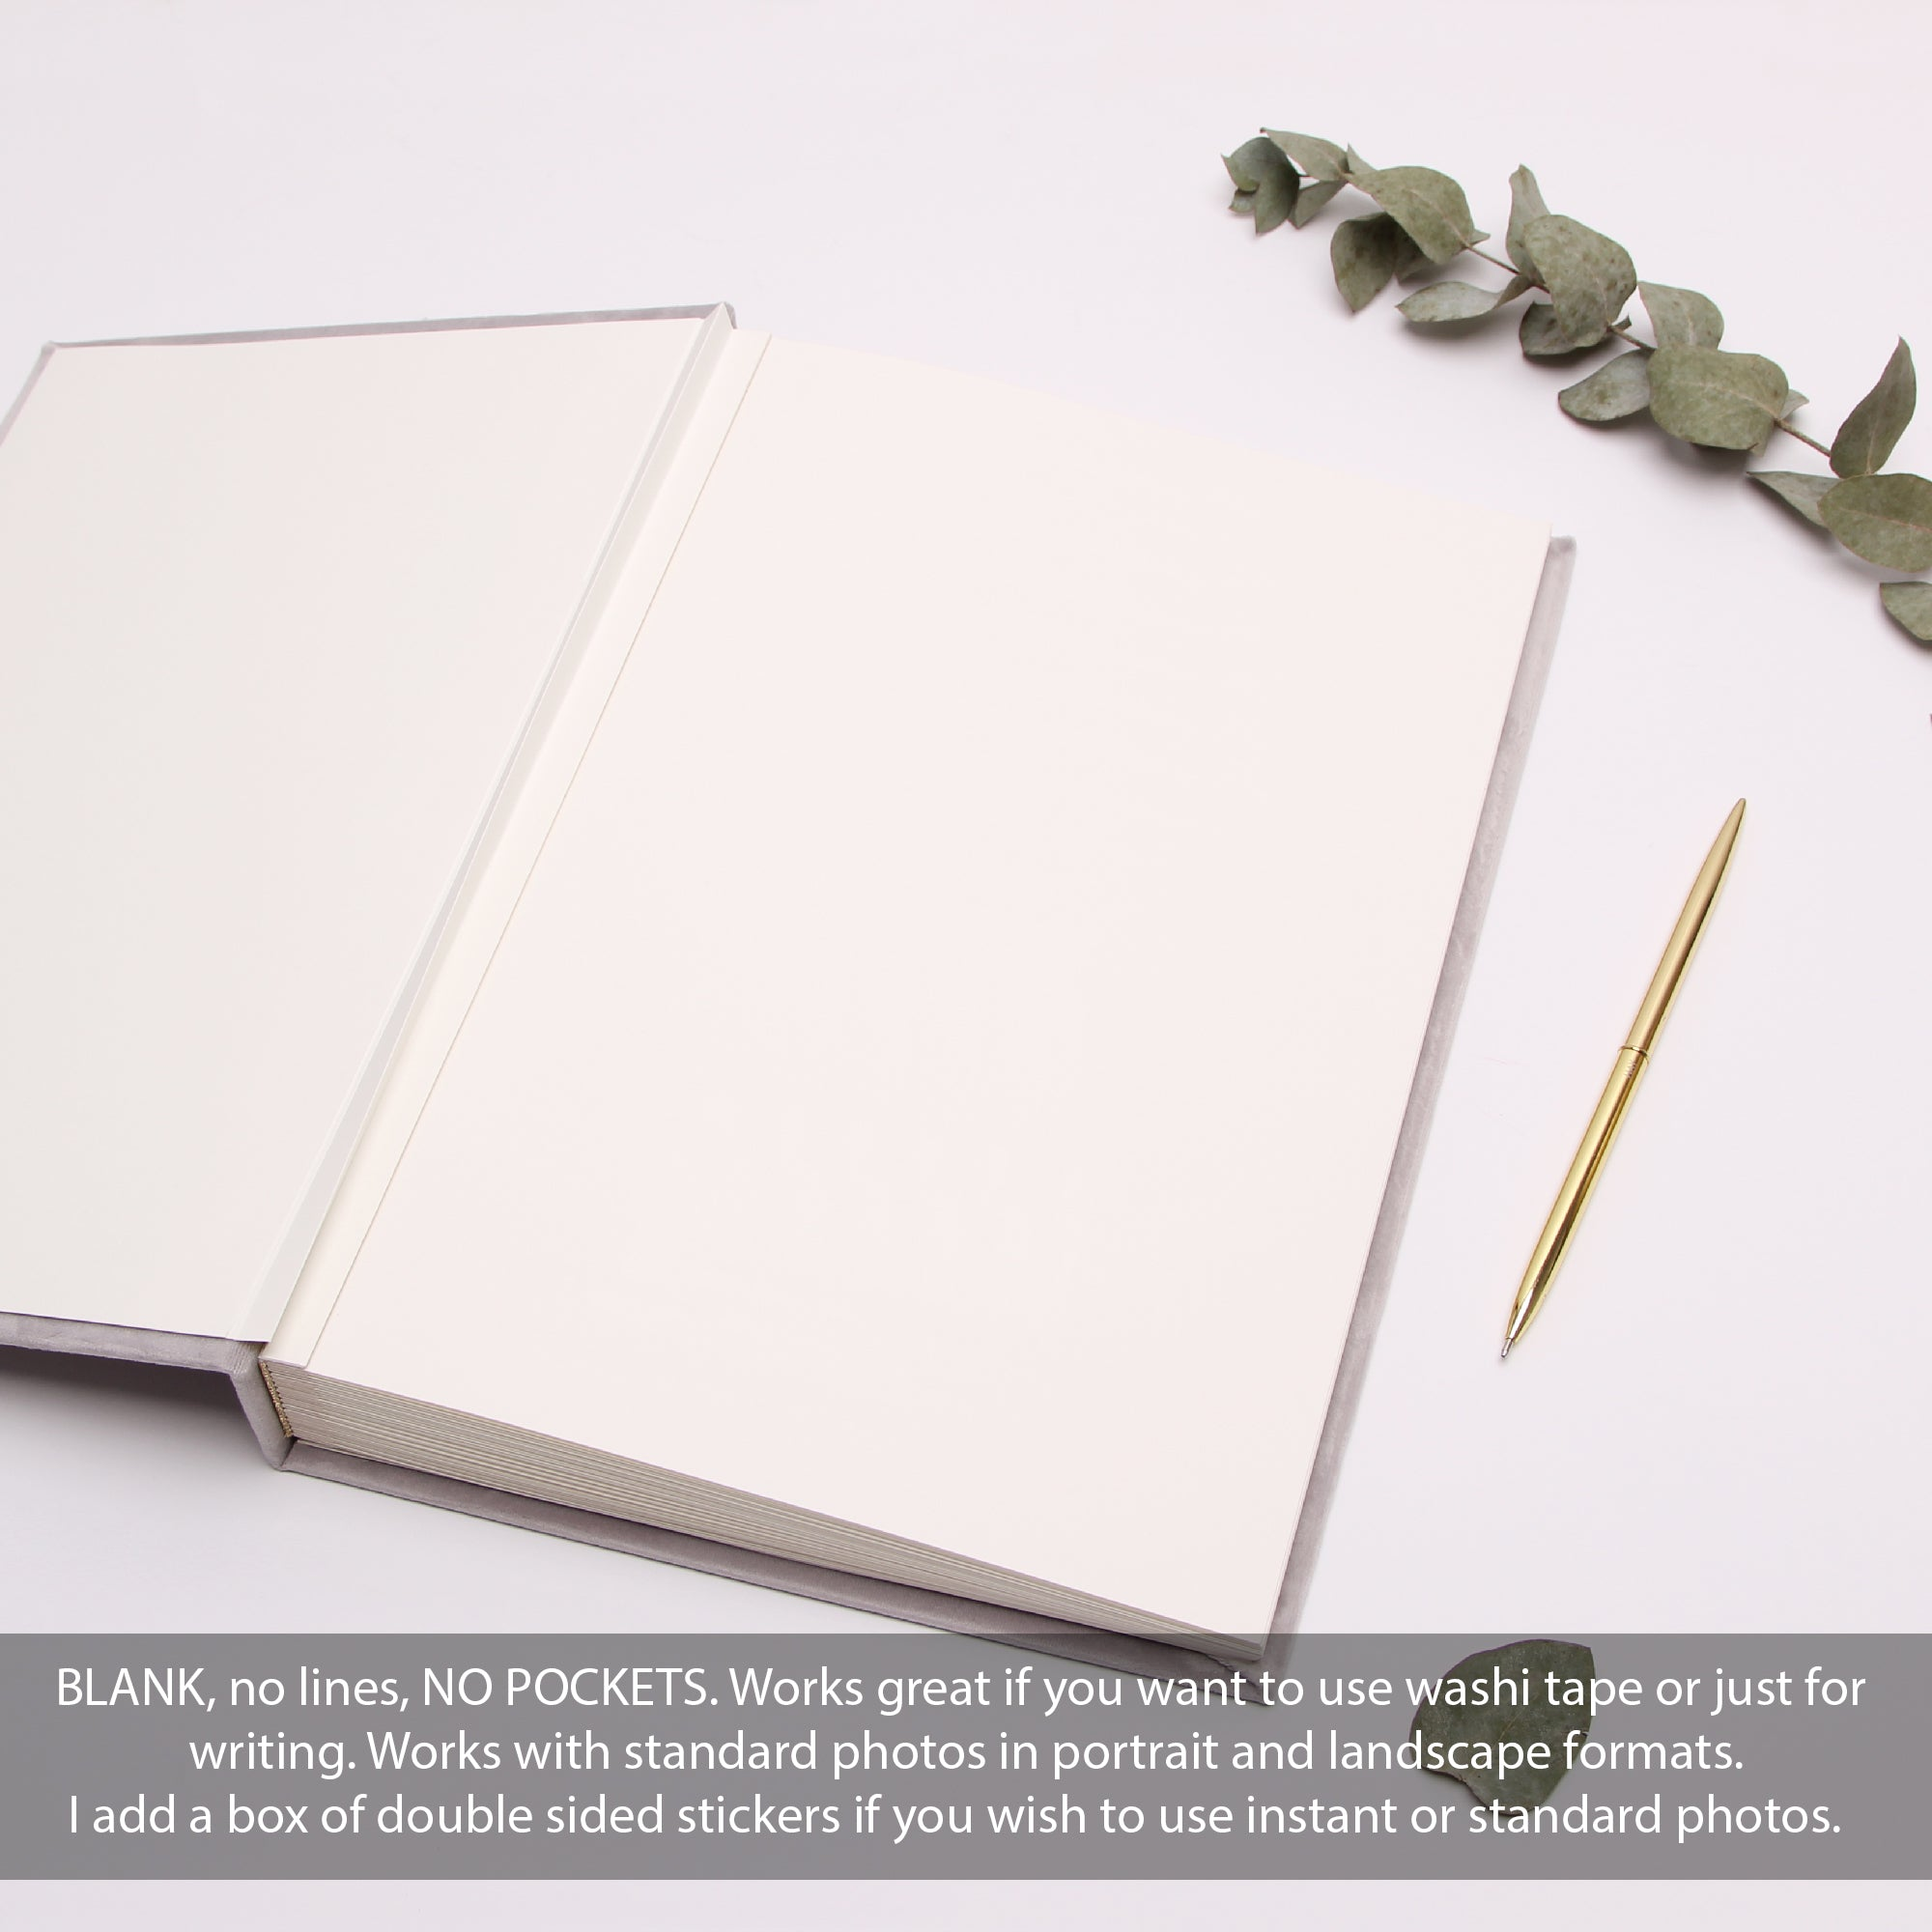 Wedding Guestbook Light Gray Velour, Real Gold Foil Album With Lettering, Instax photo album - Liumy